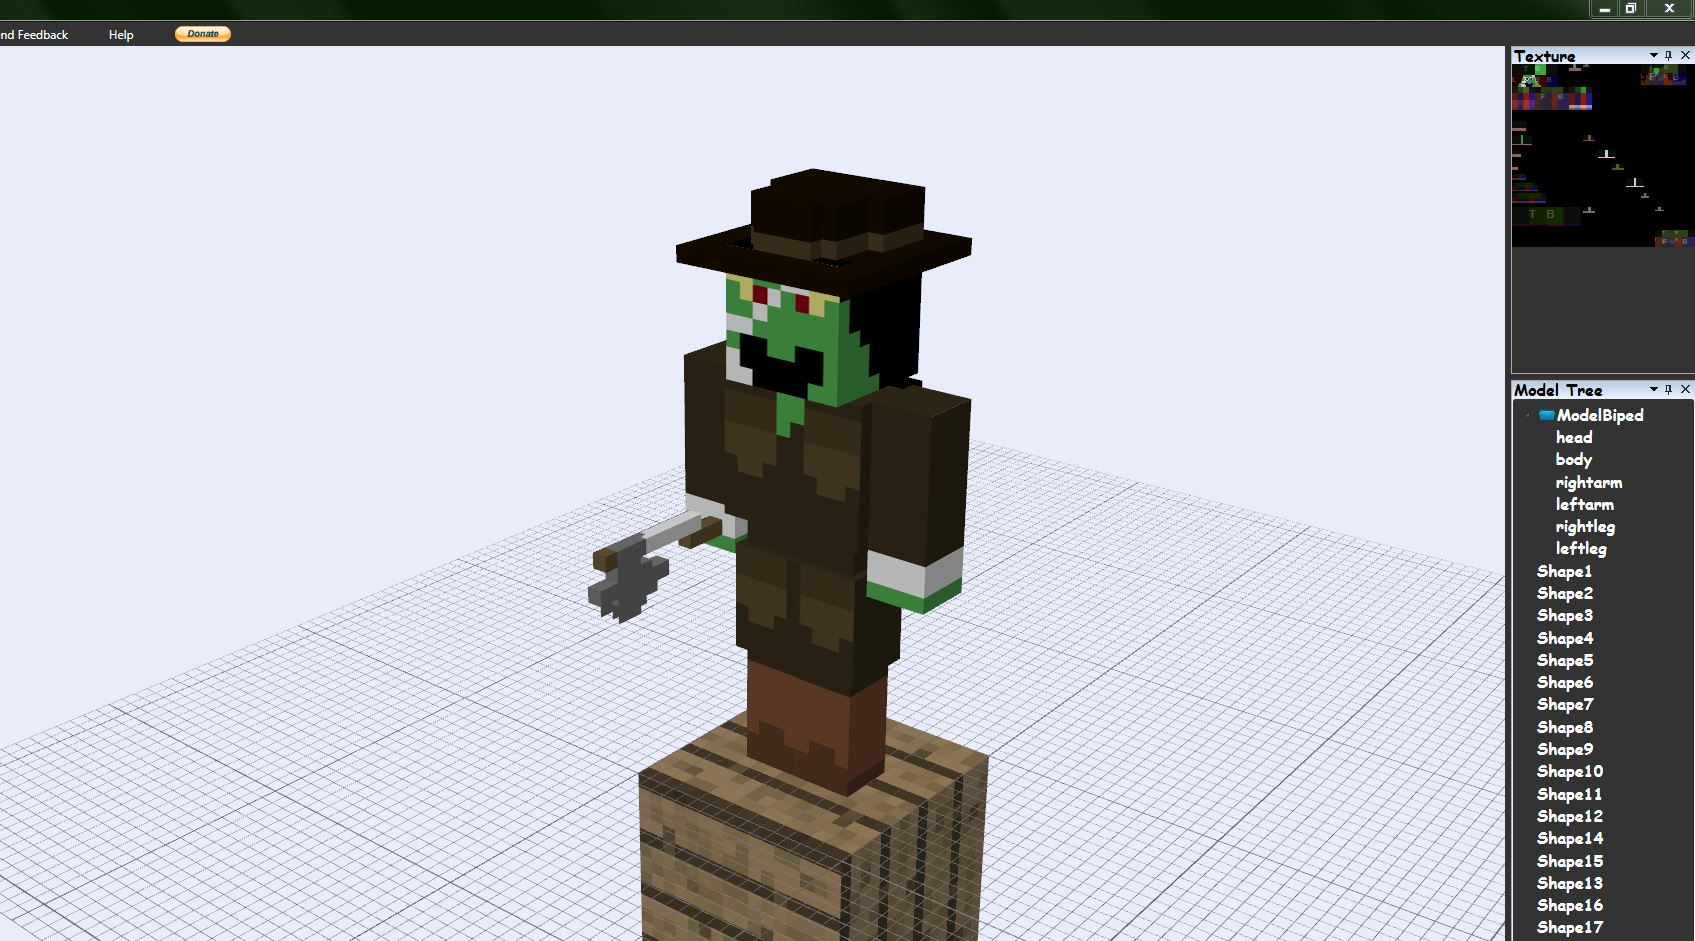 Scooby Doo Mod For Minecraft - Mods Discussion - Minecraft Mods ...